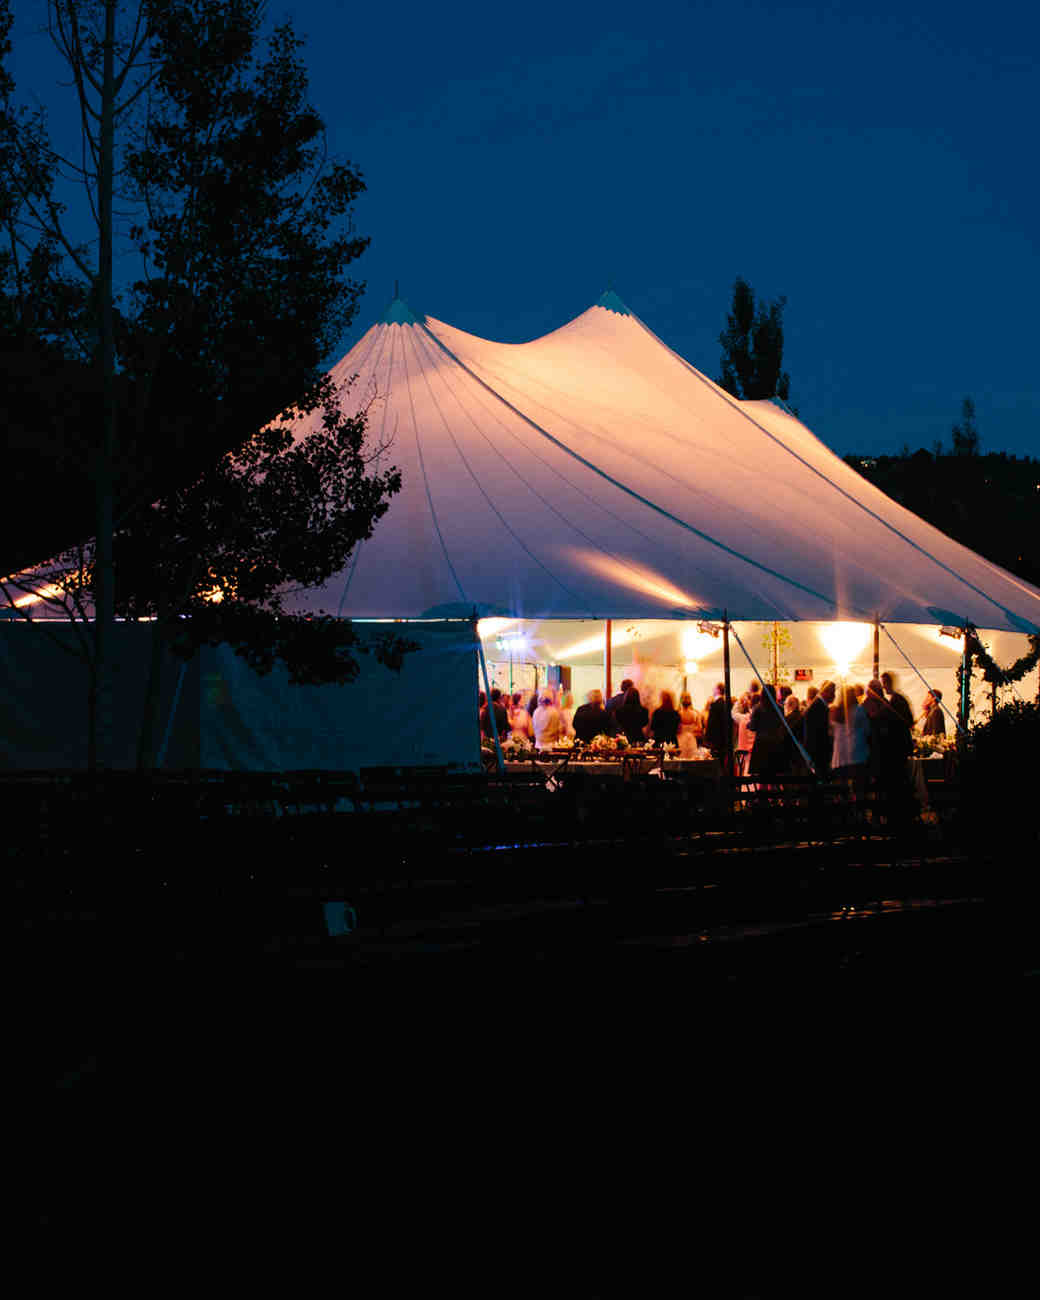 tented wedding reception at night